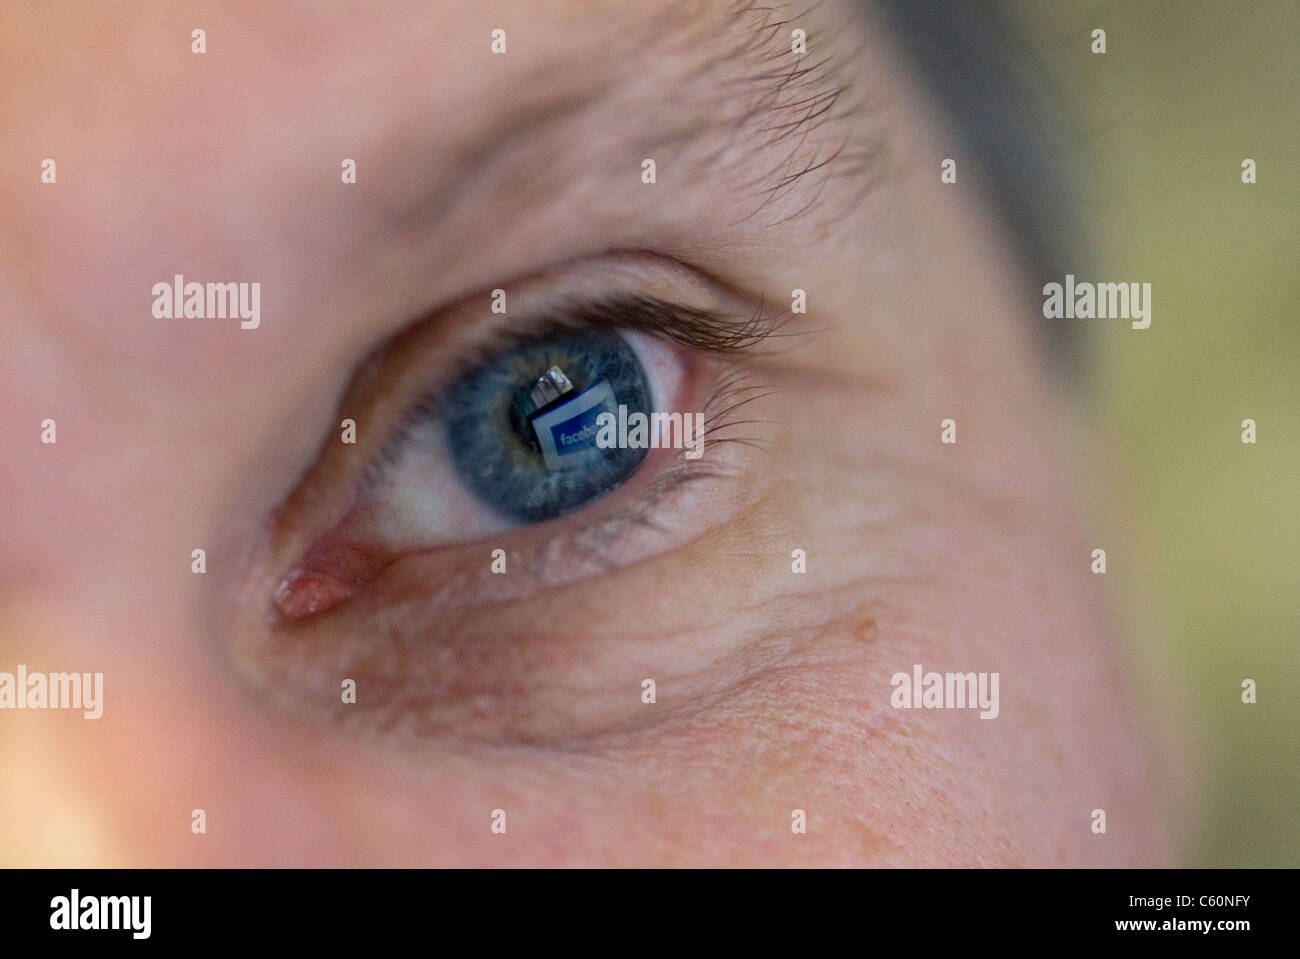 Close-up of a man's blue left eye with facebook reflected in it - Stock Image